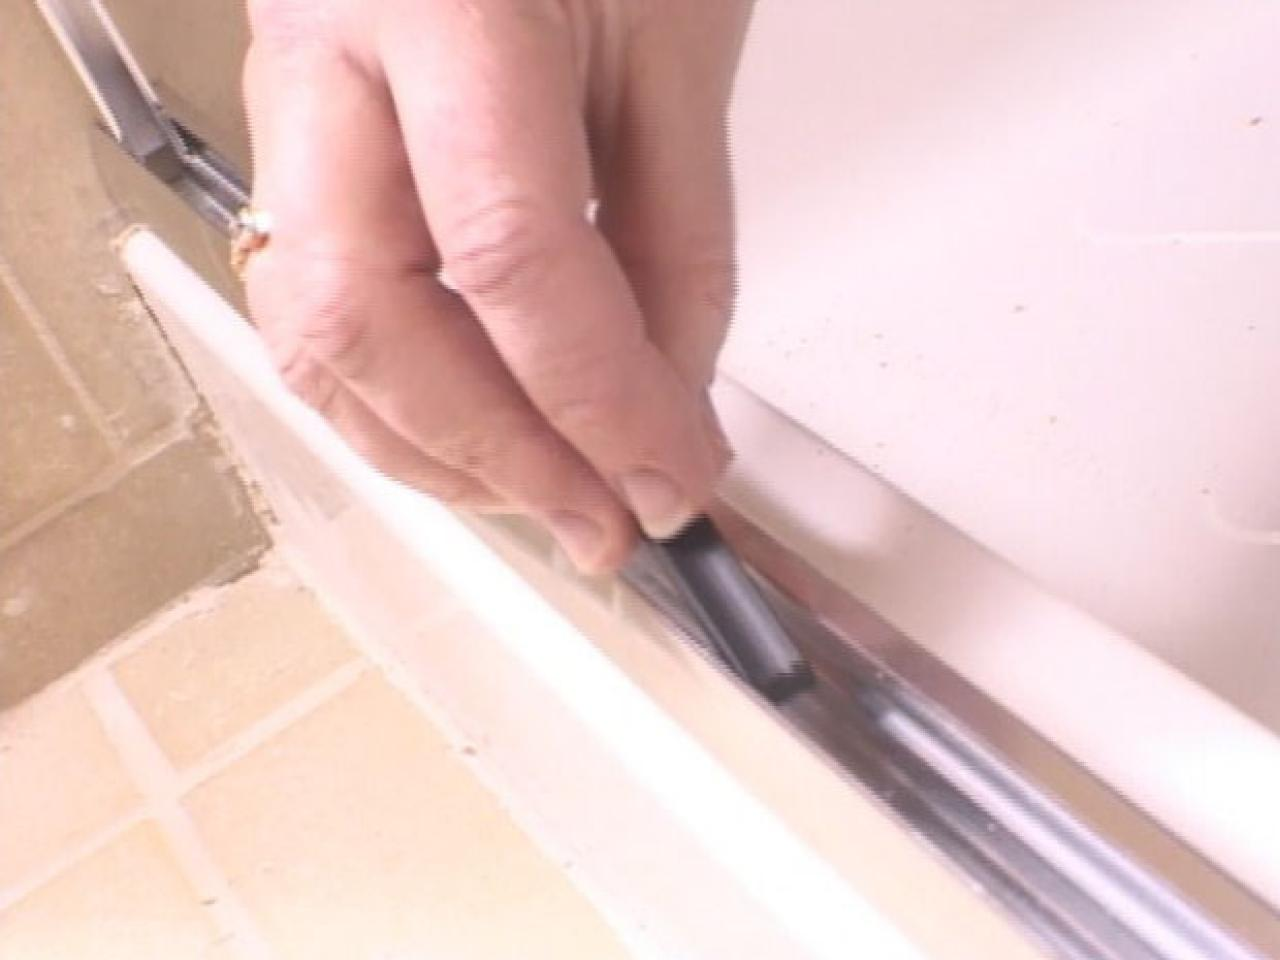 Installing A Glass Shower Door Howtos DIY - Bathroom shower glass replacement